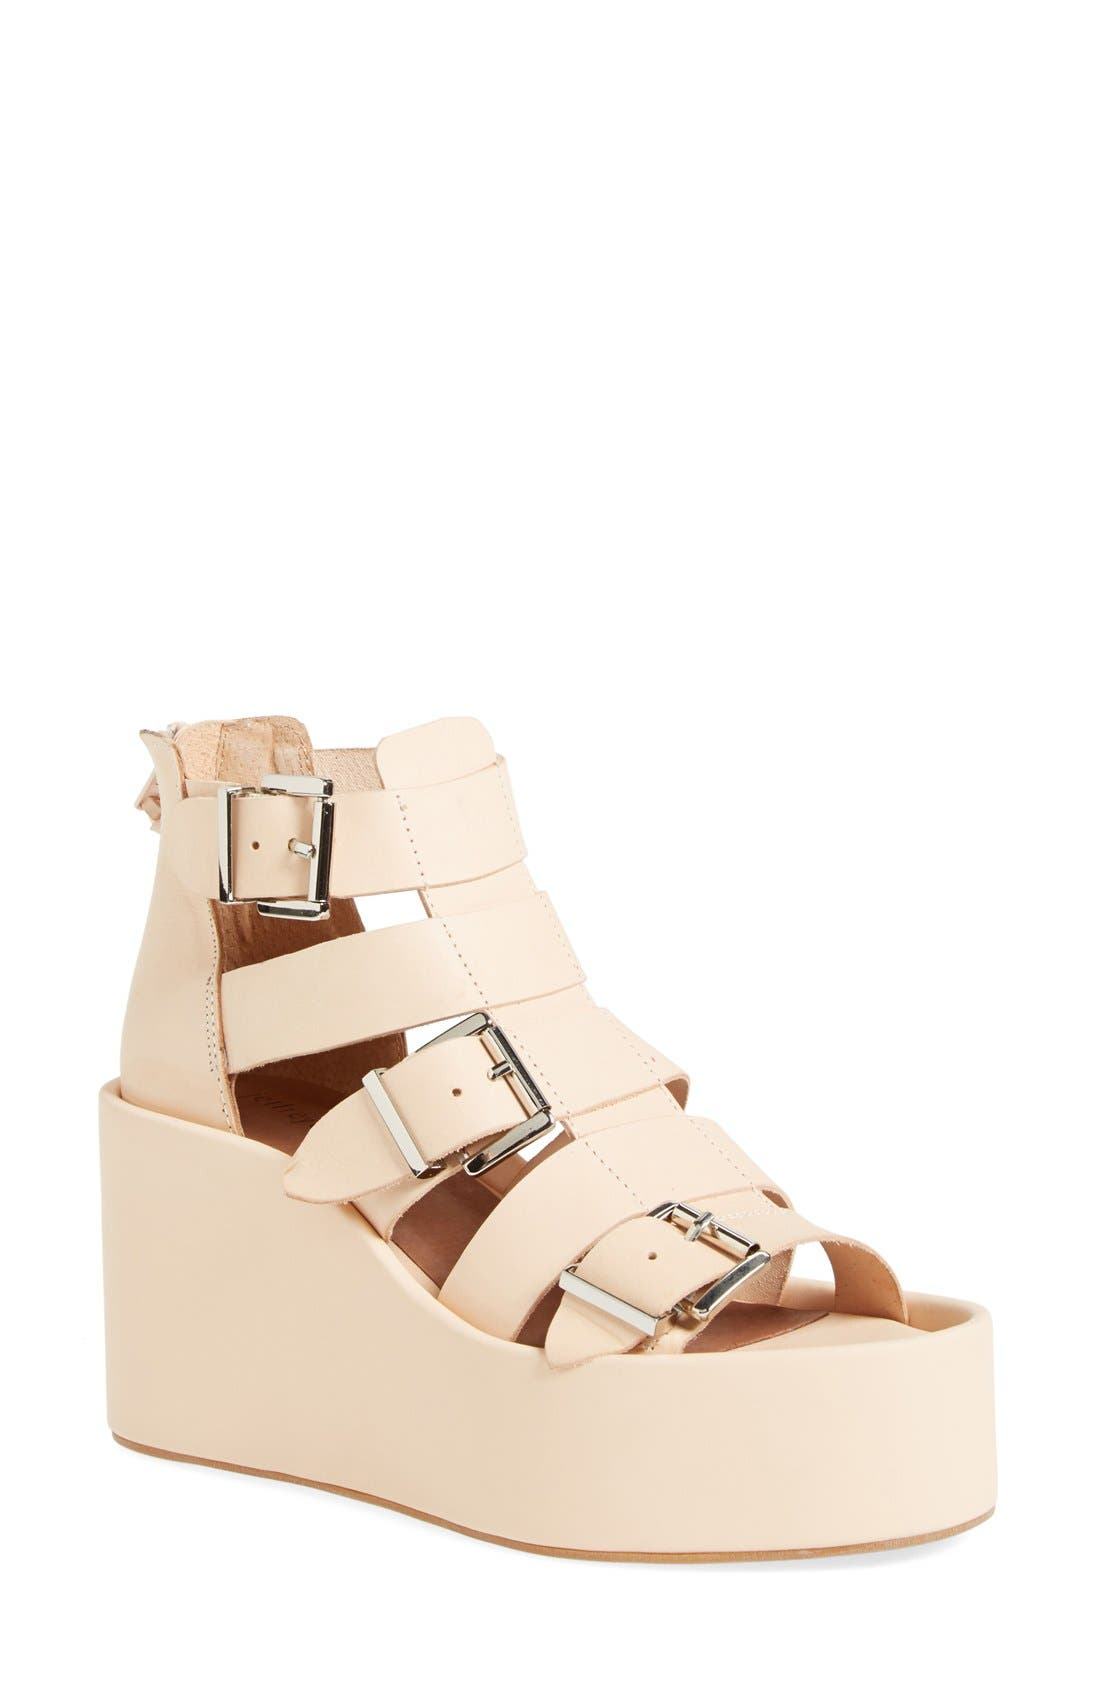 Alternate Image 1 Selected - Jeffrey Campbell 'Thetis' Platform Gladiator Sandal (Women)